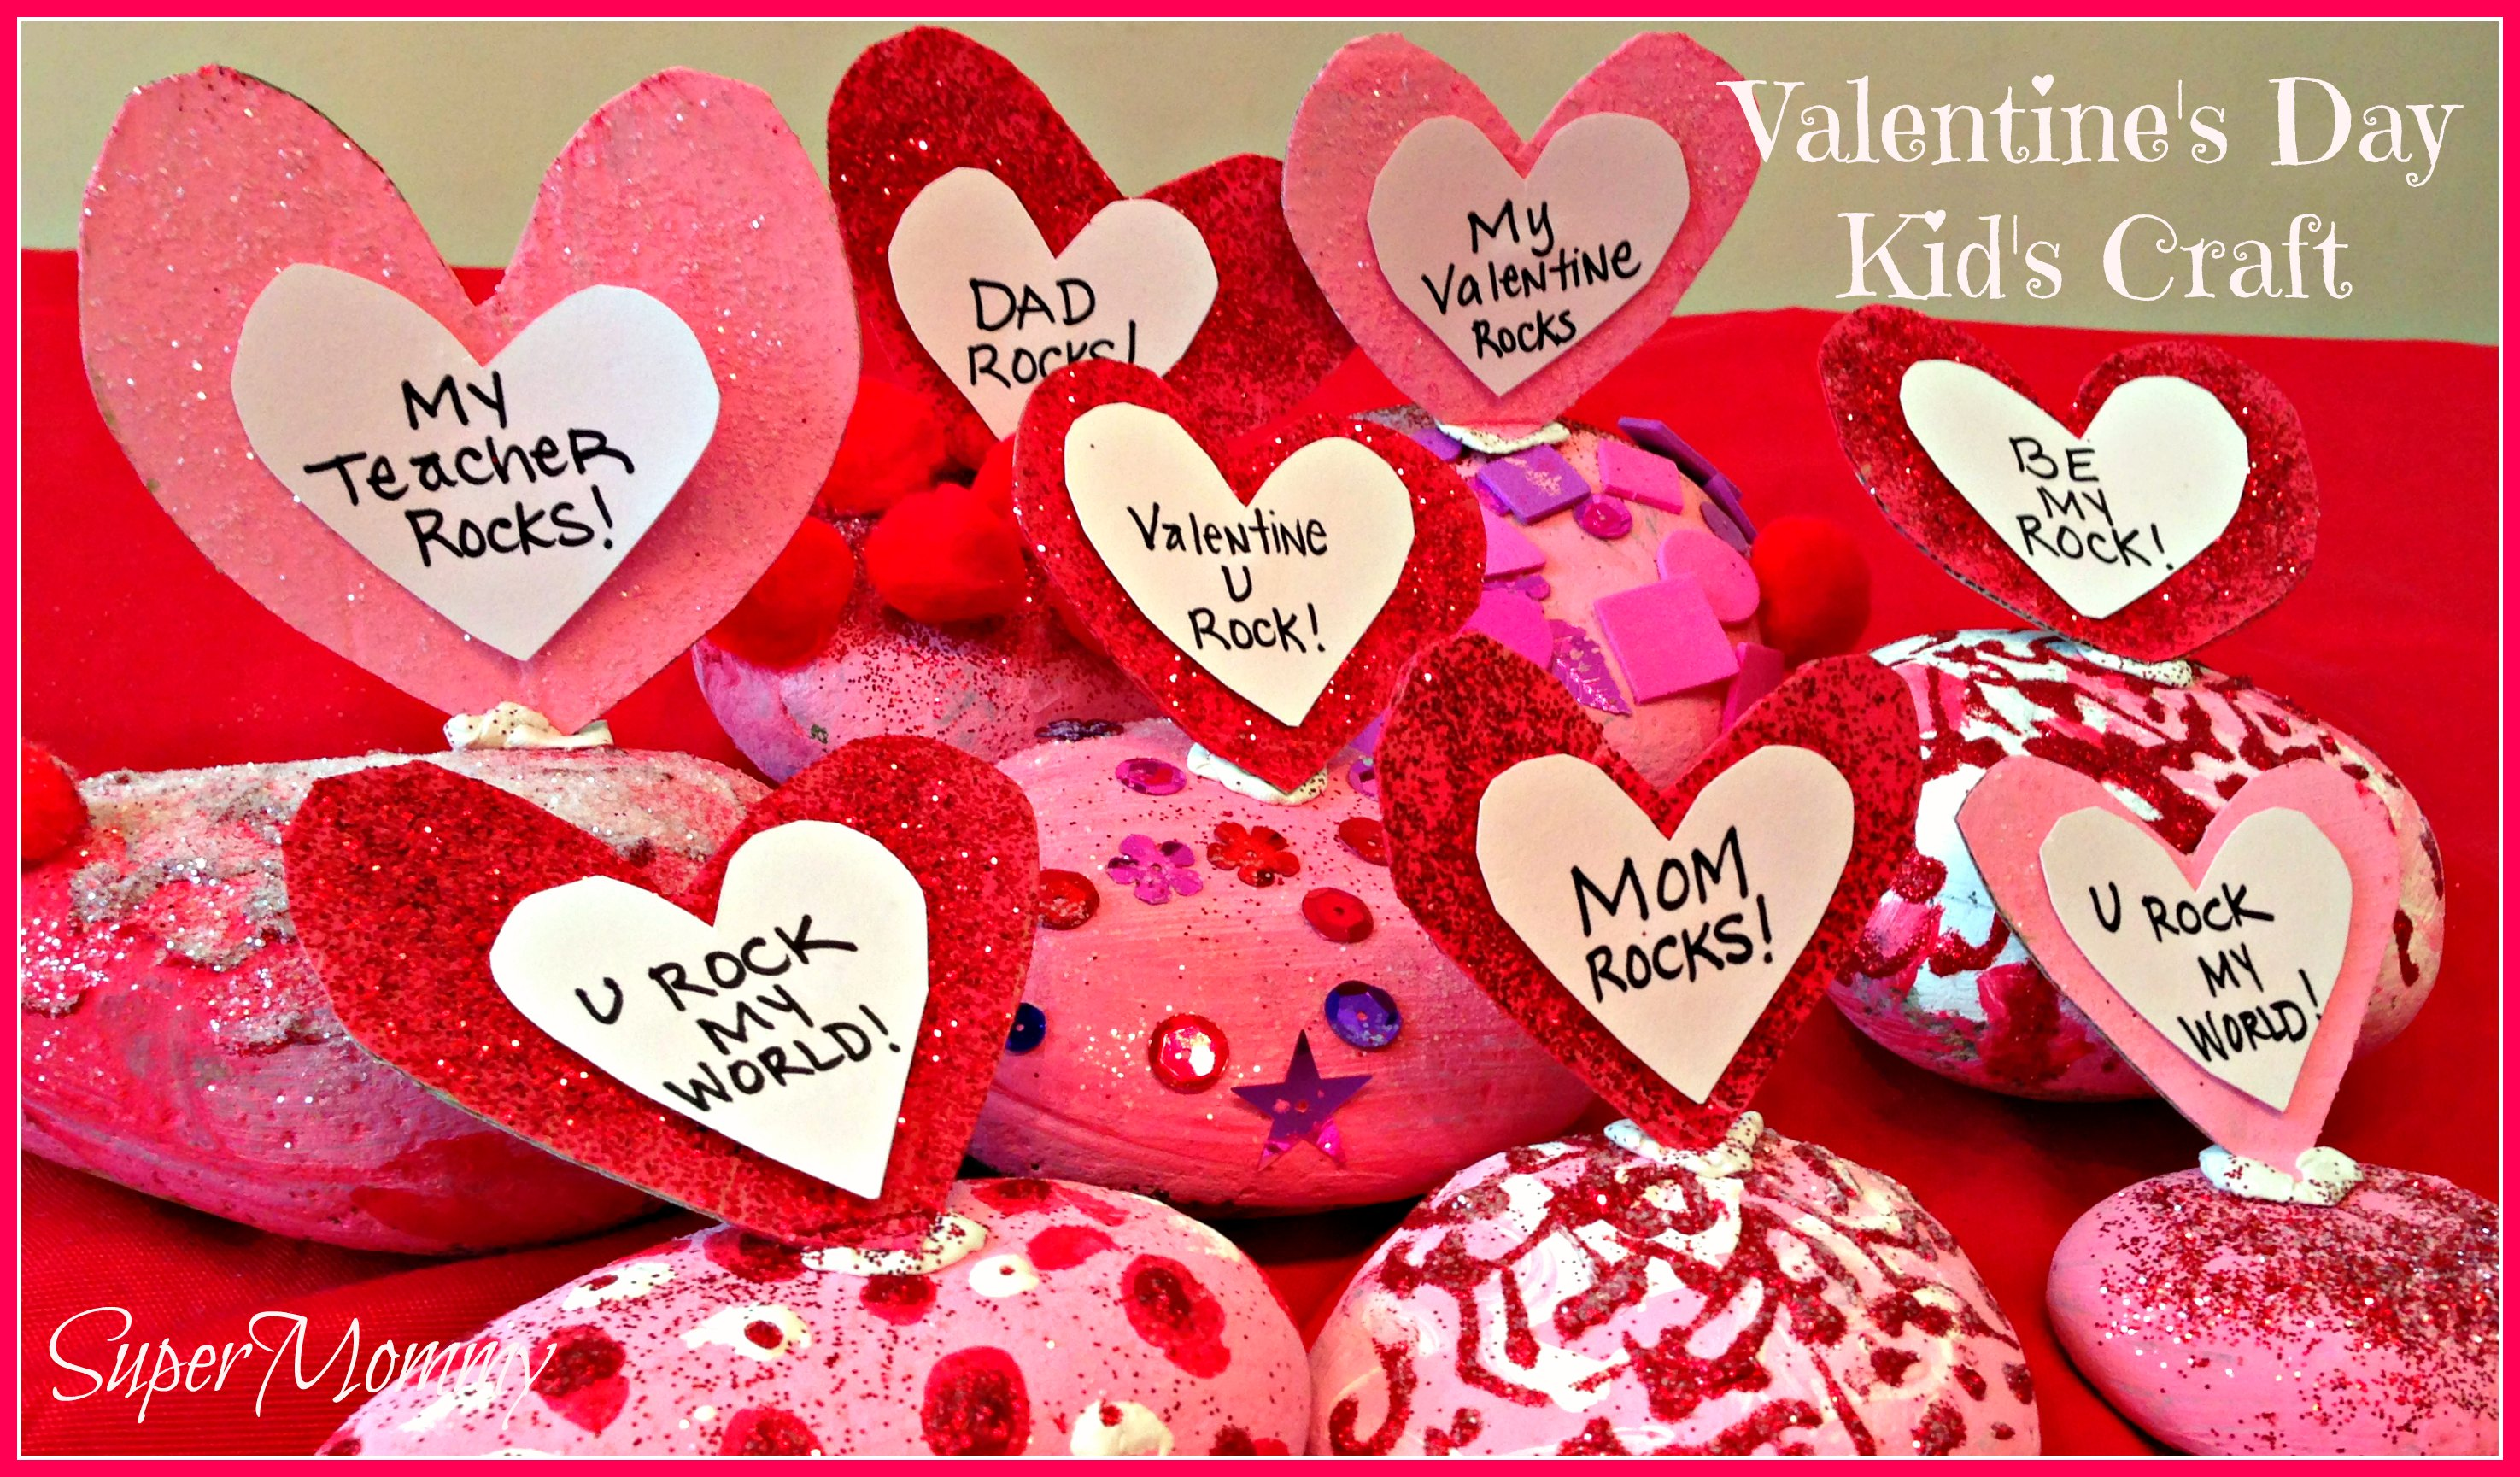 Valentines Day Easy Craft for Kids  Conversation Rocks